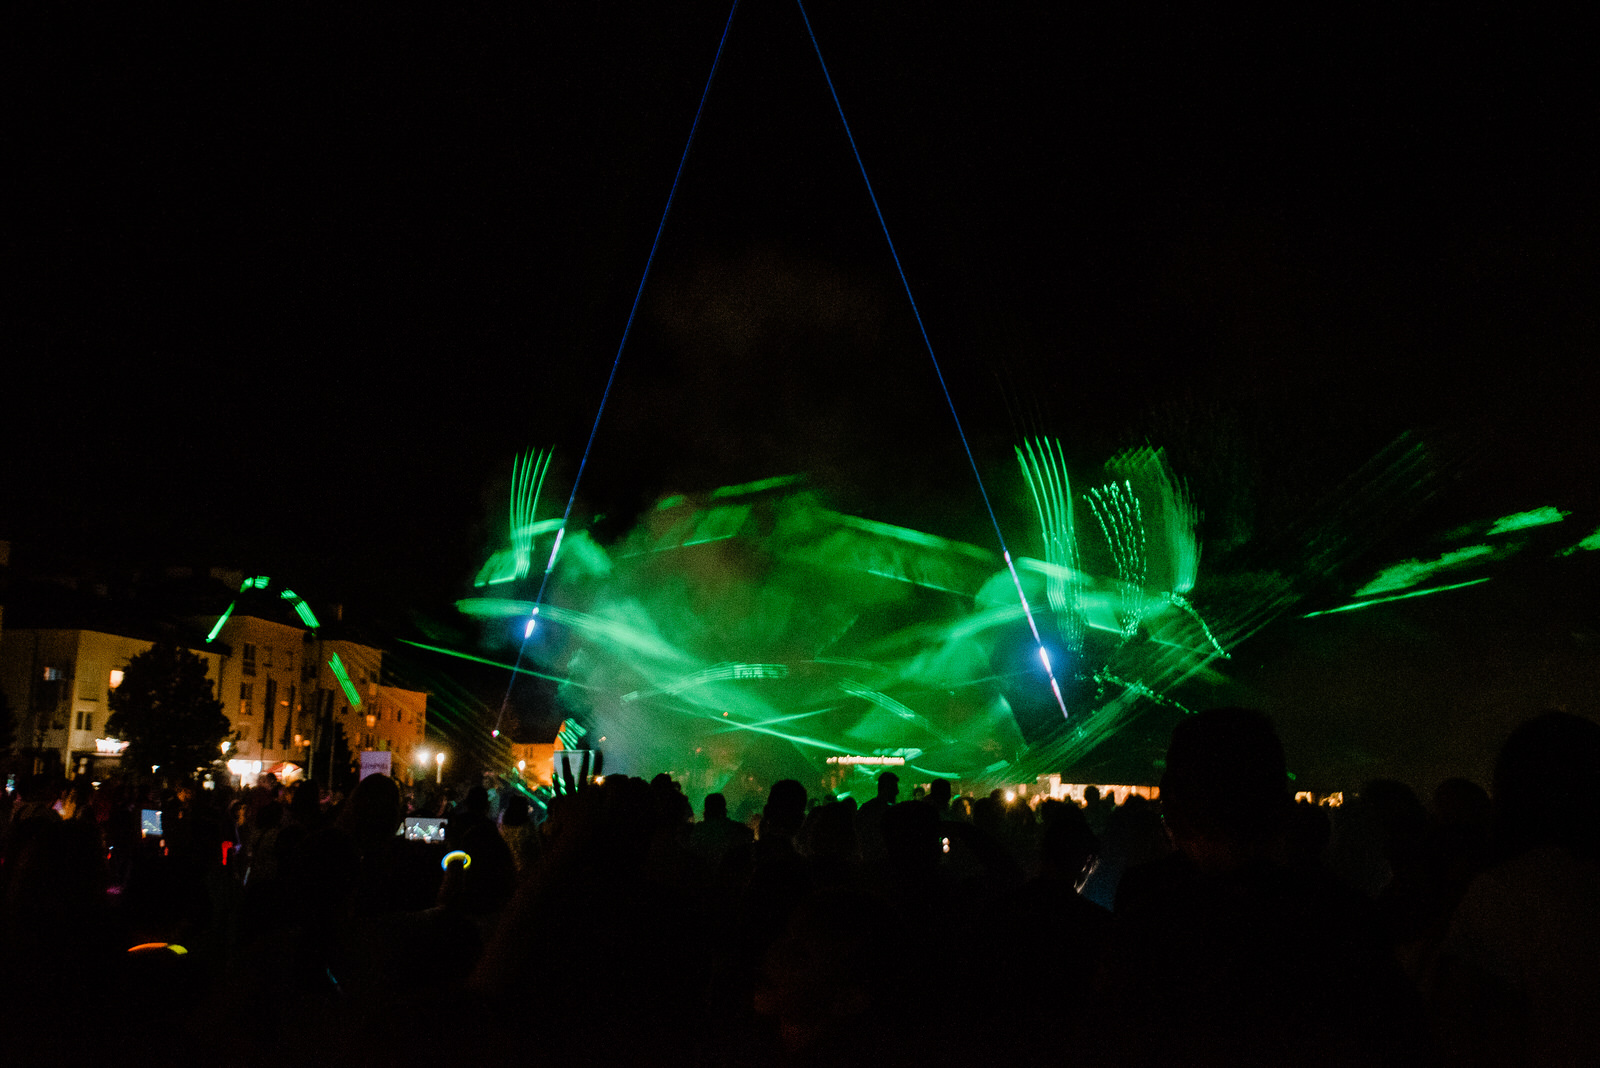 likaclub_gospić_tesla-light-show_2019-76